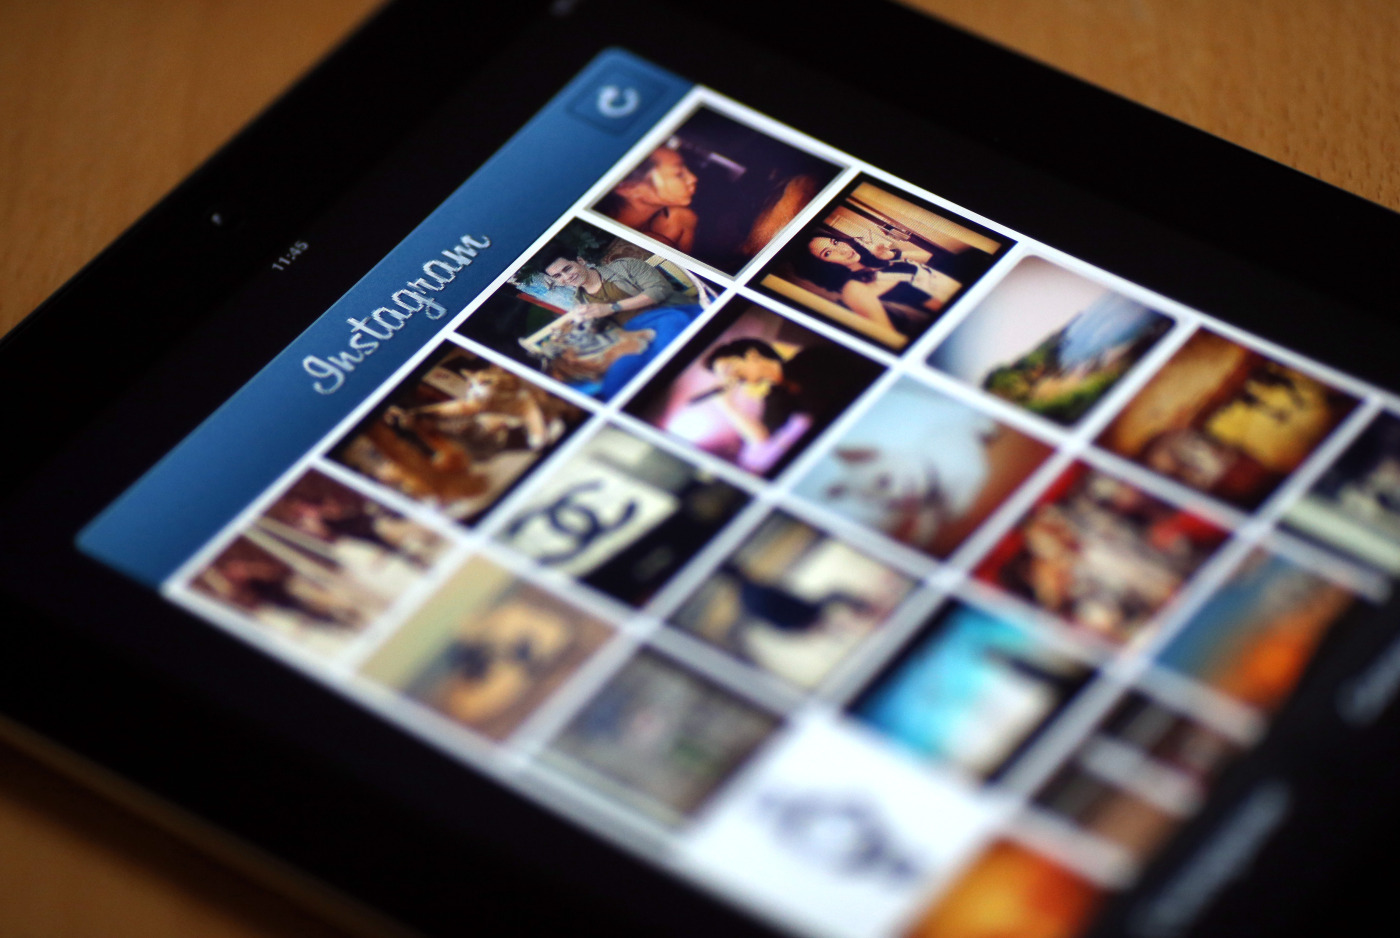 Pictures appear on the smartphone sharing application Instagram.